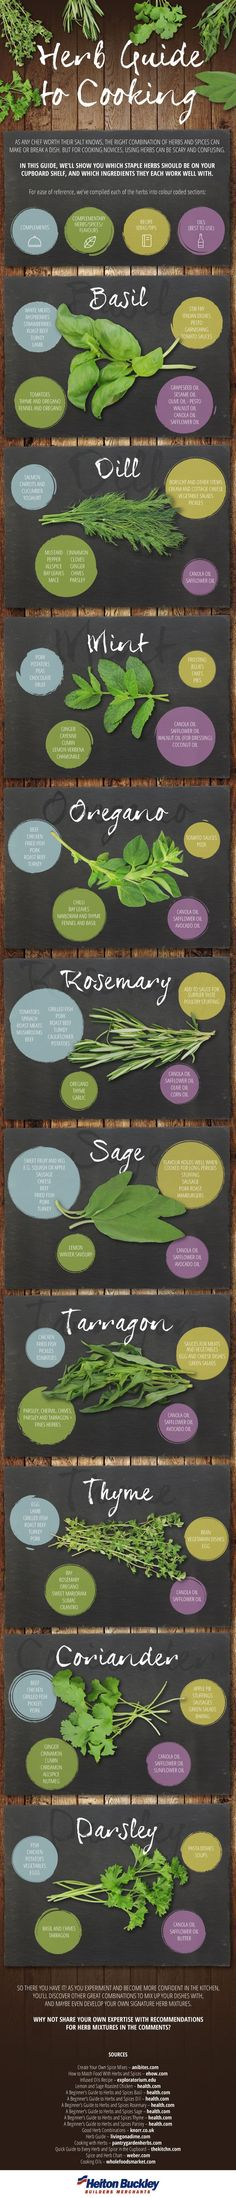 Herb Guide To Cooking - Perfect for those fresh summer herbs and a lifelong guide for how to grasp the perfect complementary flavors and recipes! #infographic #cooking #herbs Best Food Processor, Food Processor Recipes, Cooking Herbs, Herb Recipes, Asparagus, Home Goods, Prepping, Home And Garden, Gardening Tips